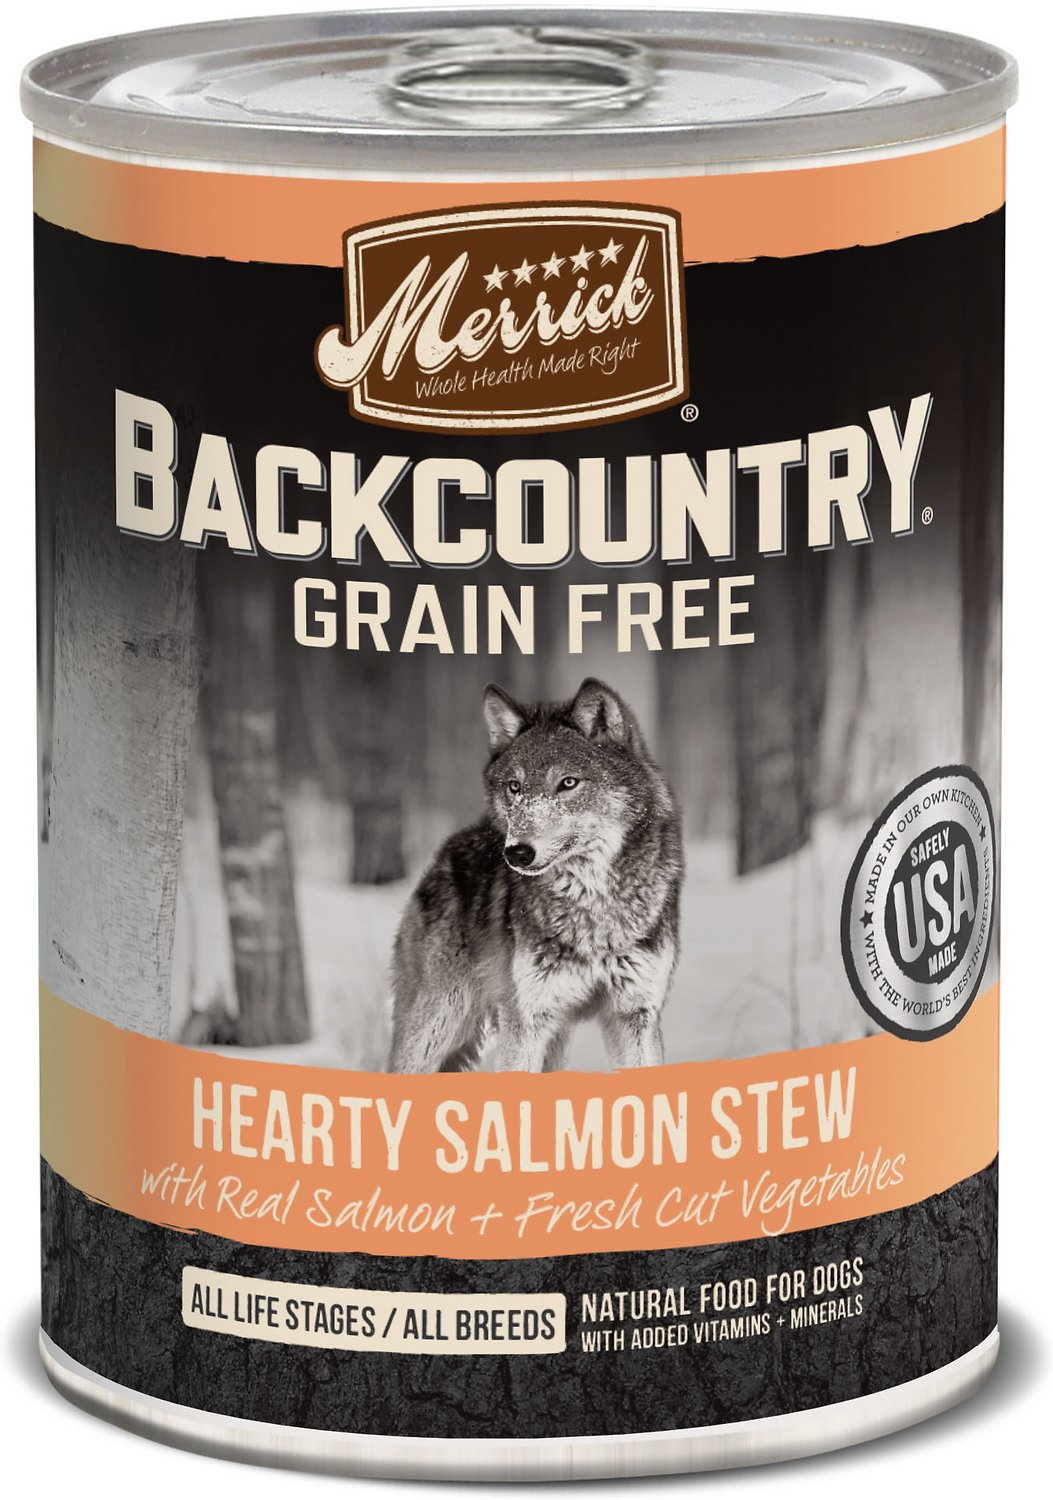 Merrick Backcountry Grain-Free Hearty Salmon Stew Canned Dog Food, 12.7-oz